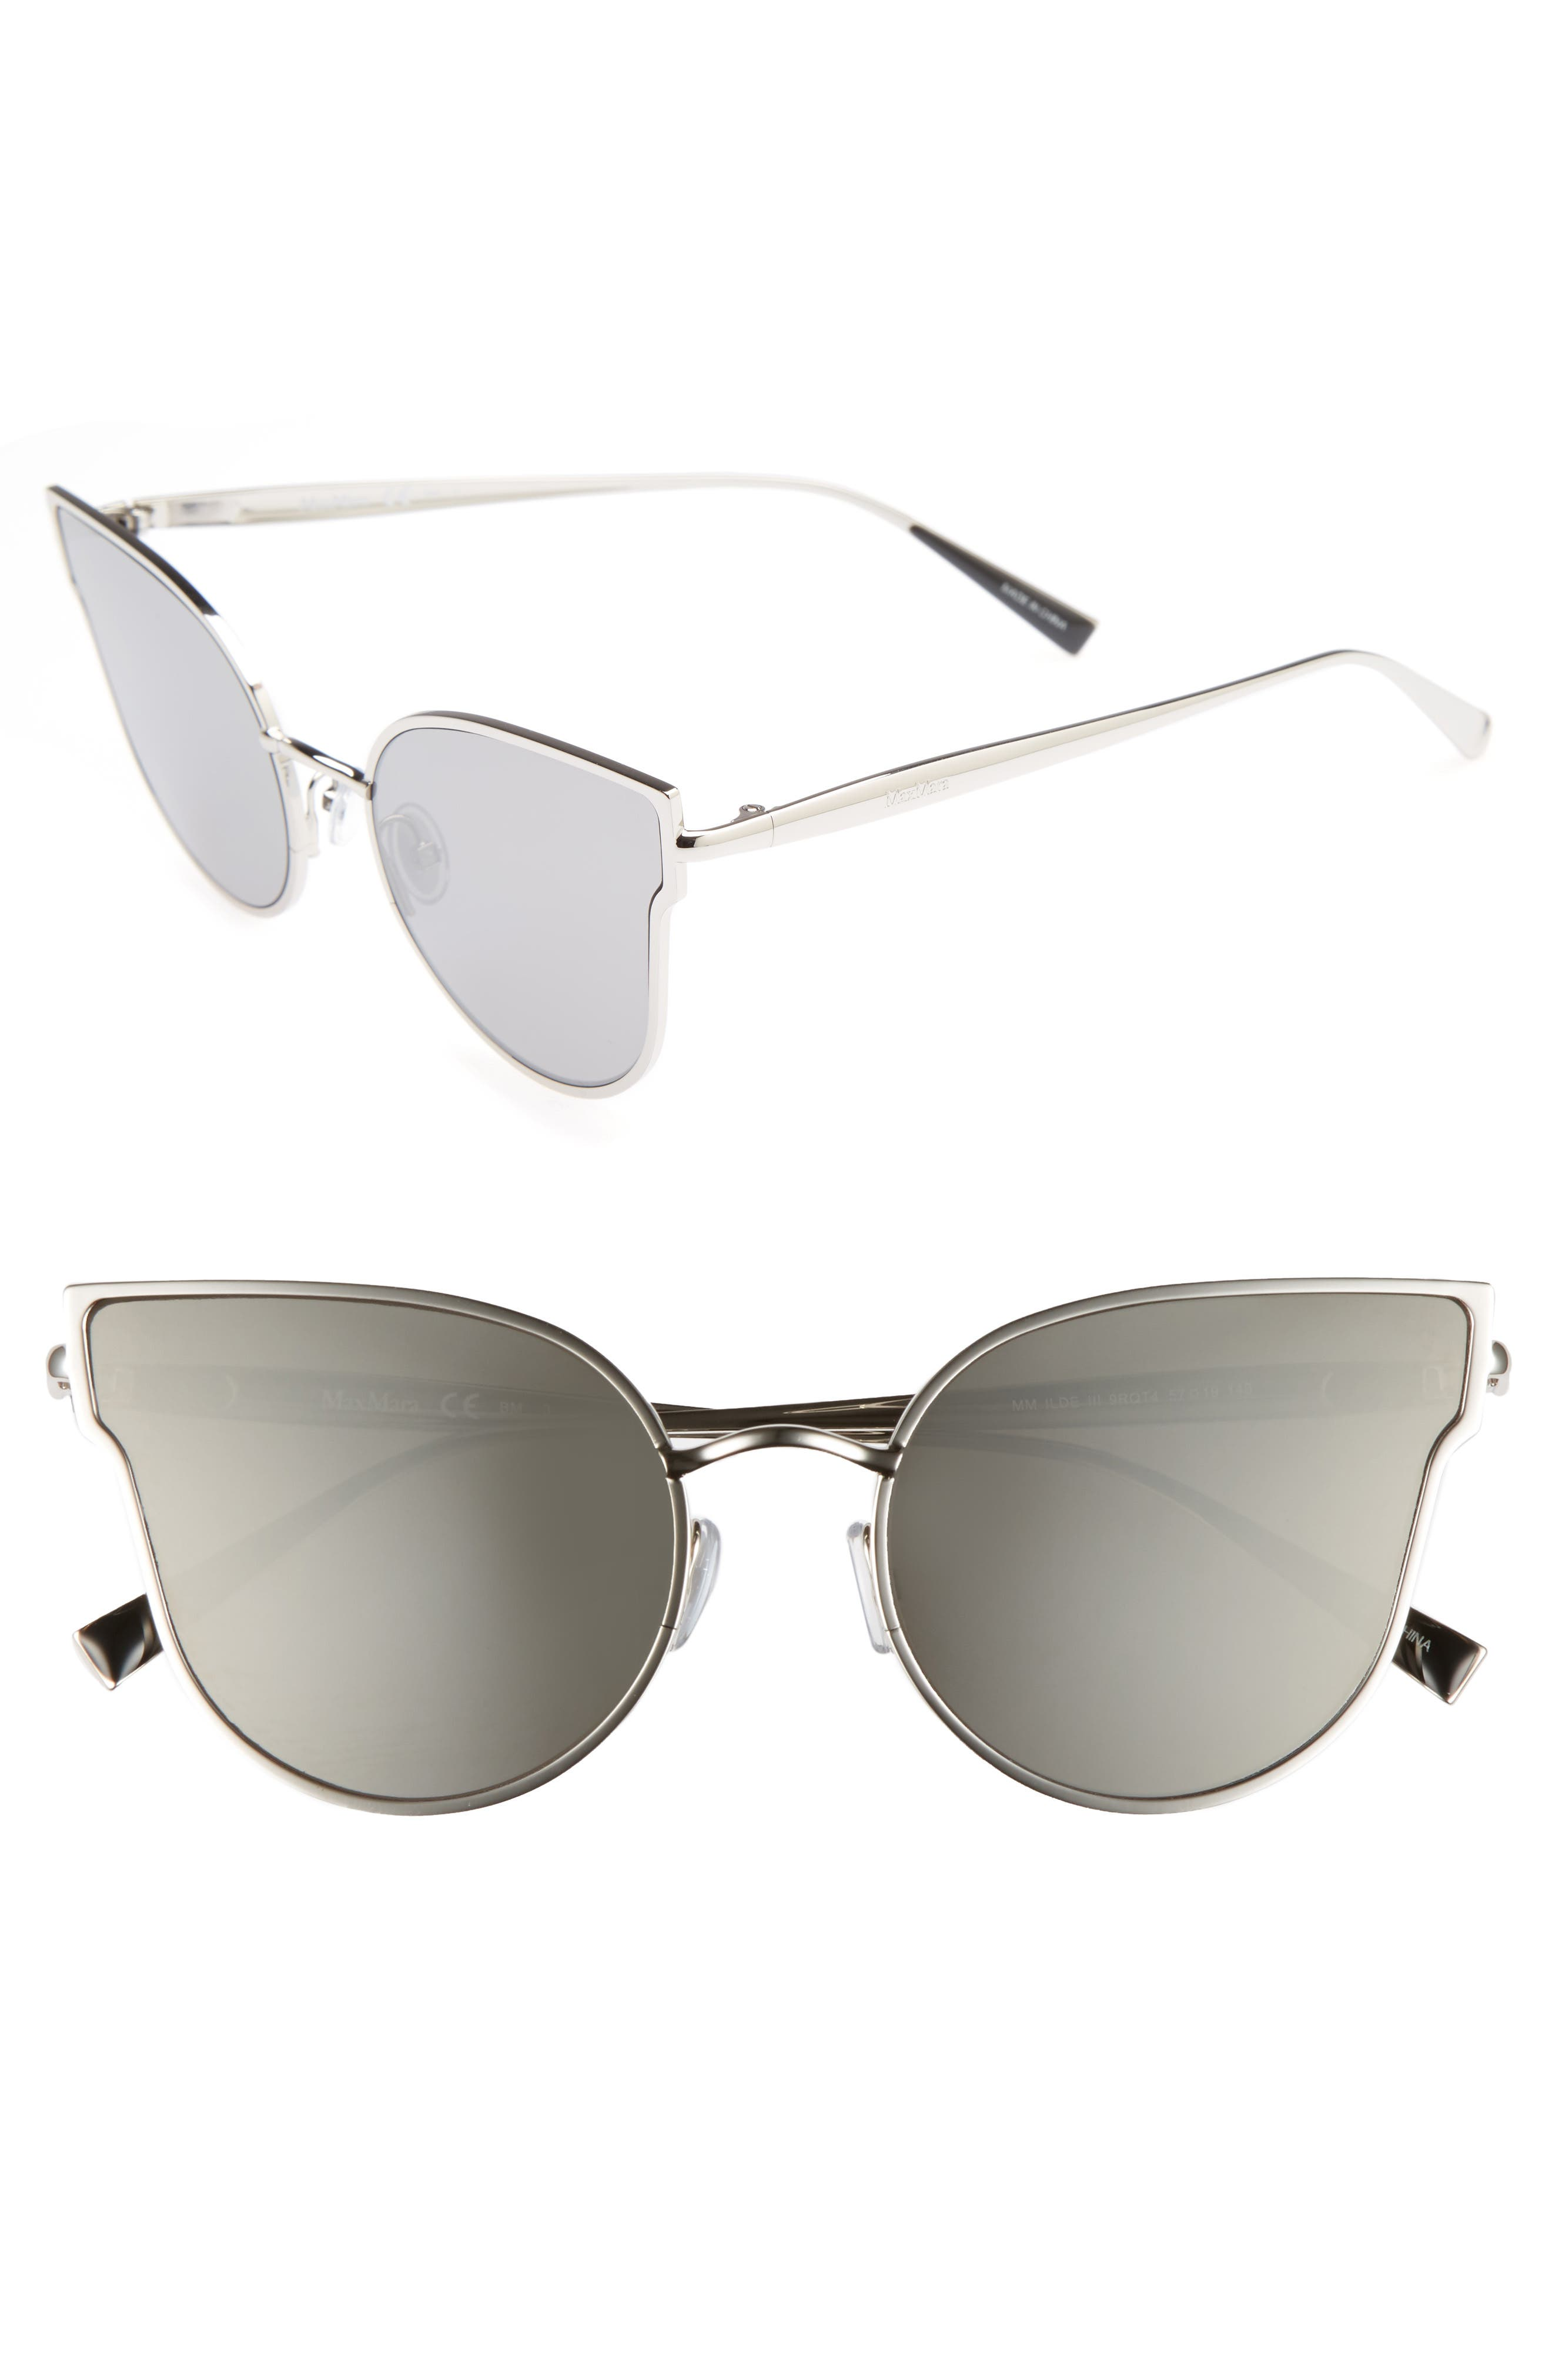 Ilde III 57mm Mirrored Cat Eye Sunglasses,                             Main thumbnail 1, color,                             Smoke Silver